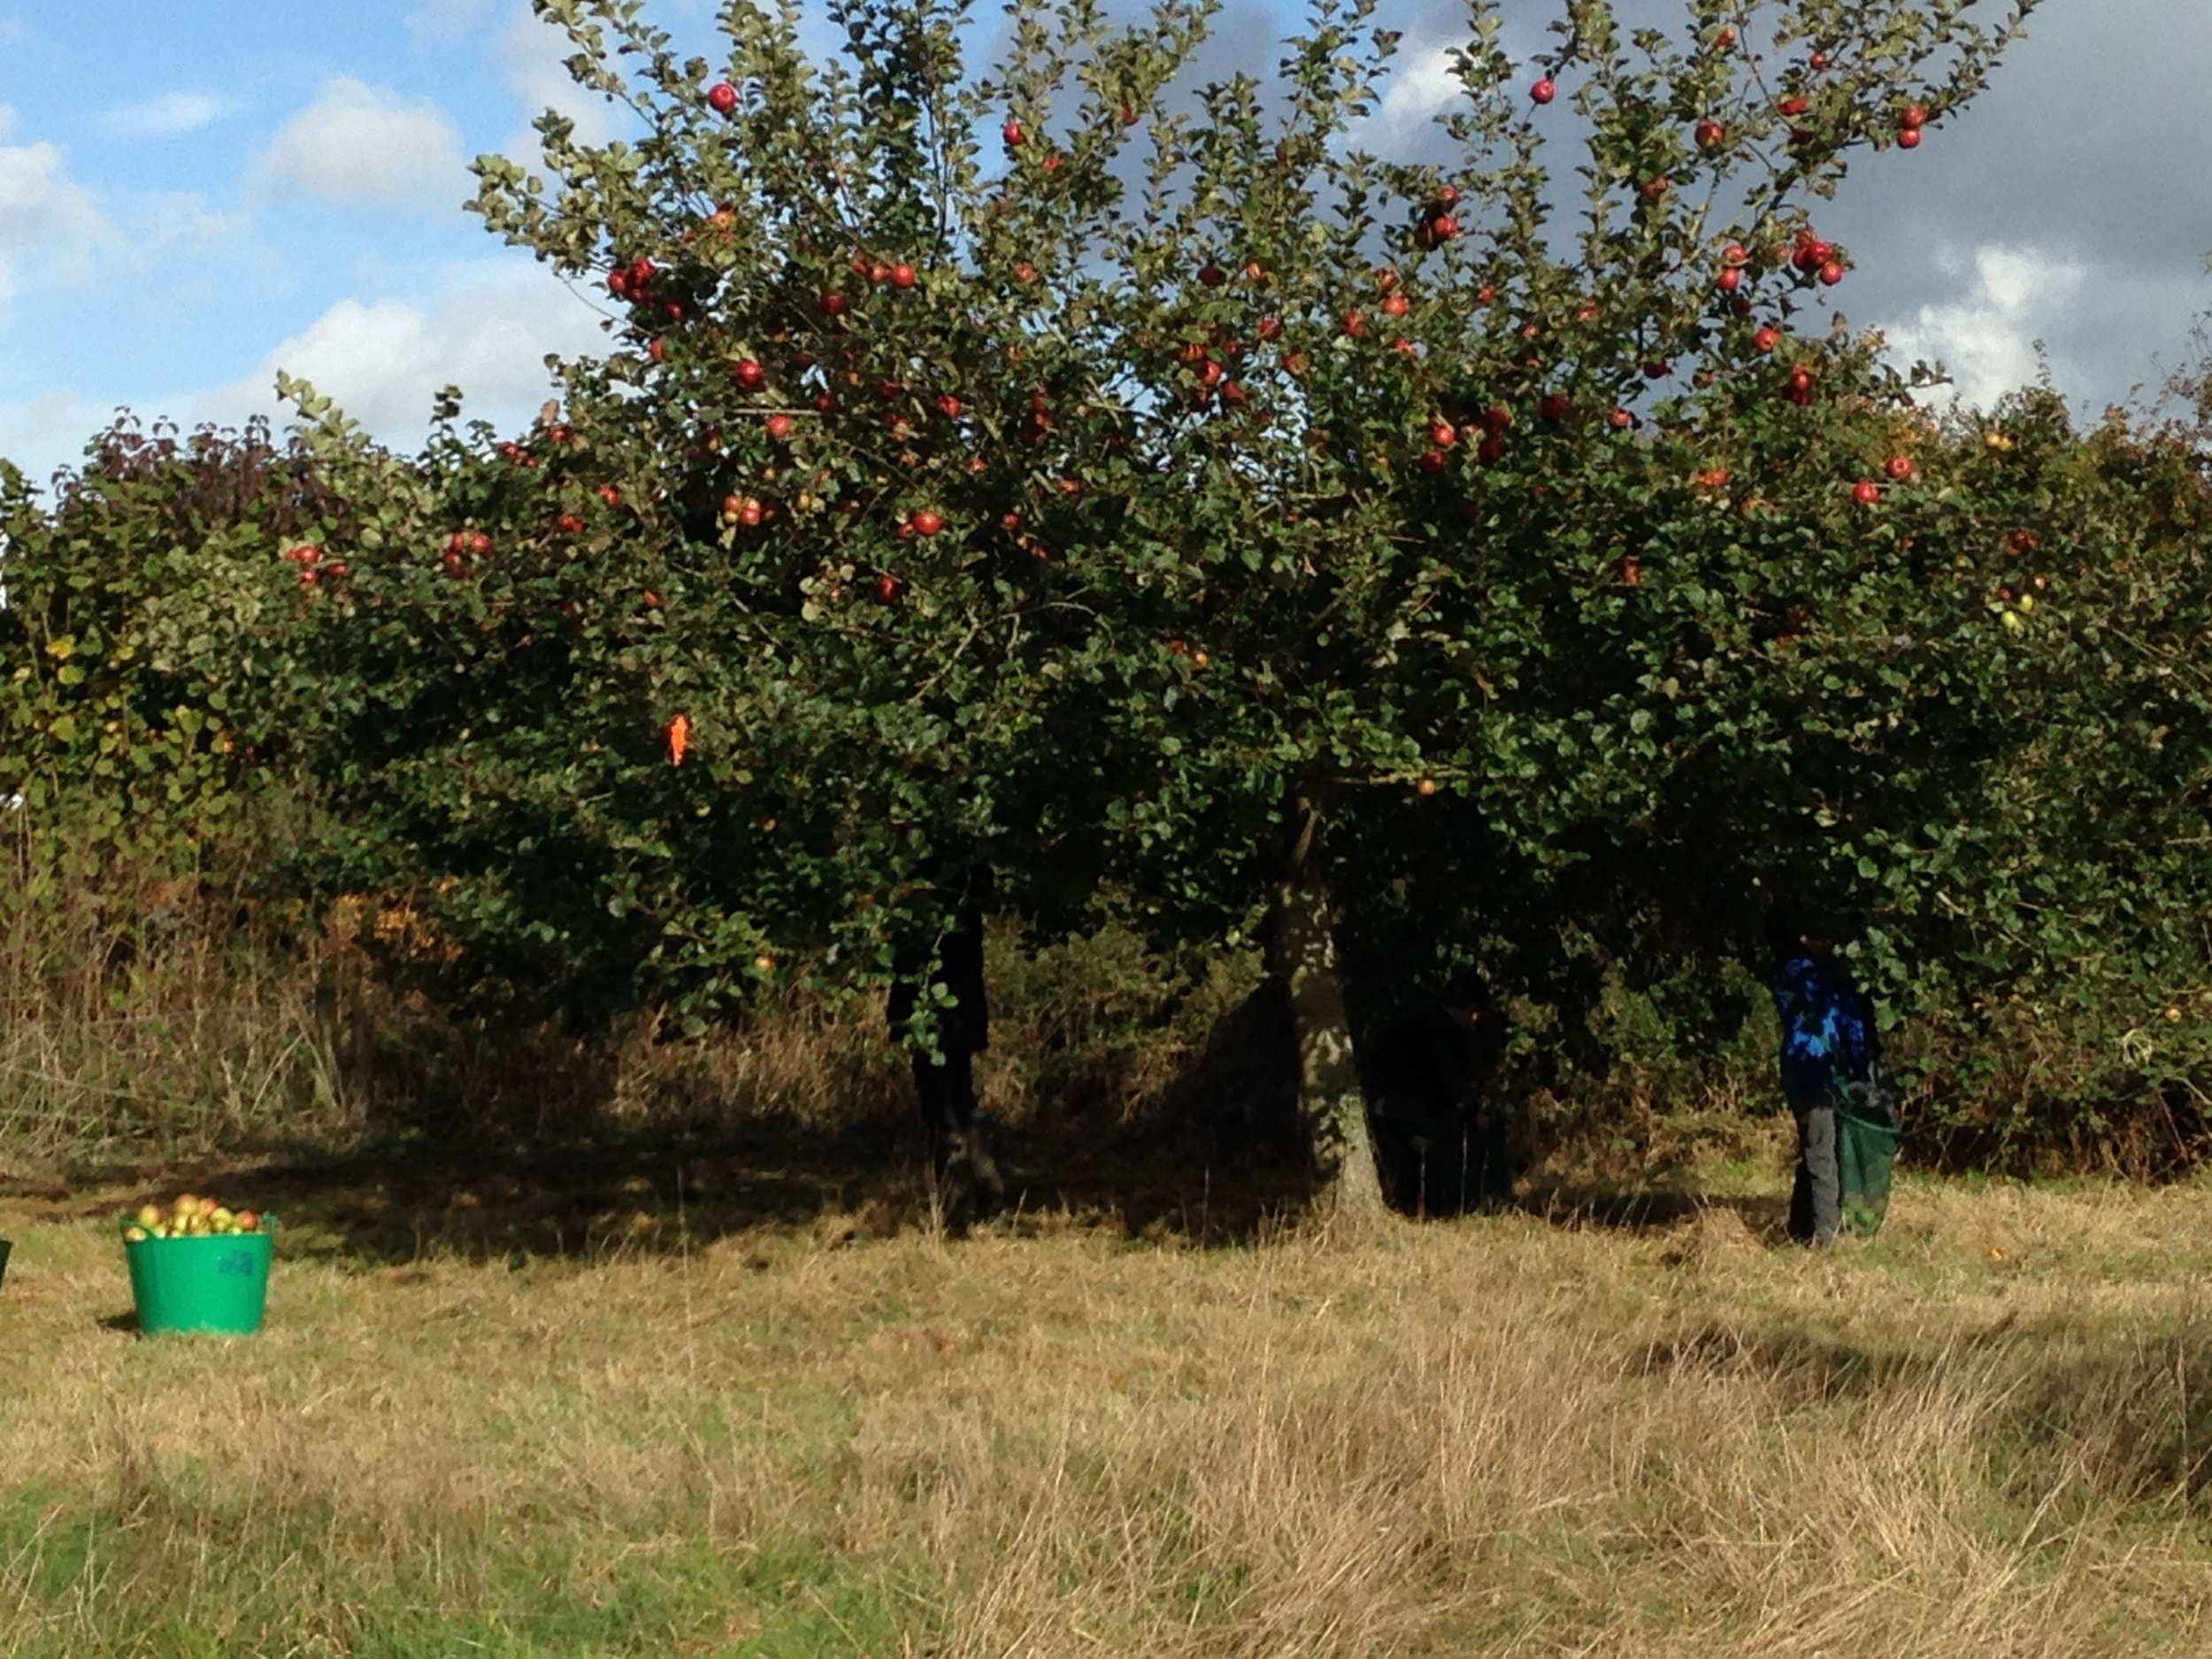 harvesting apples